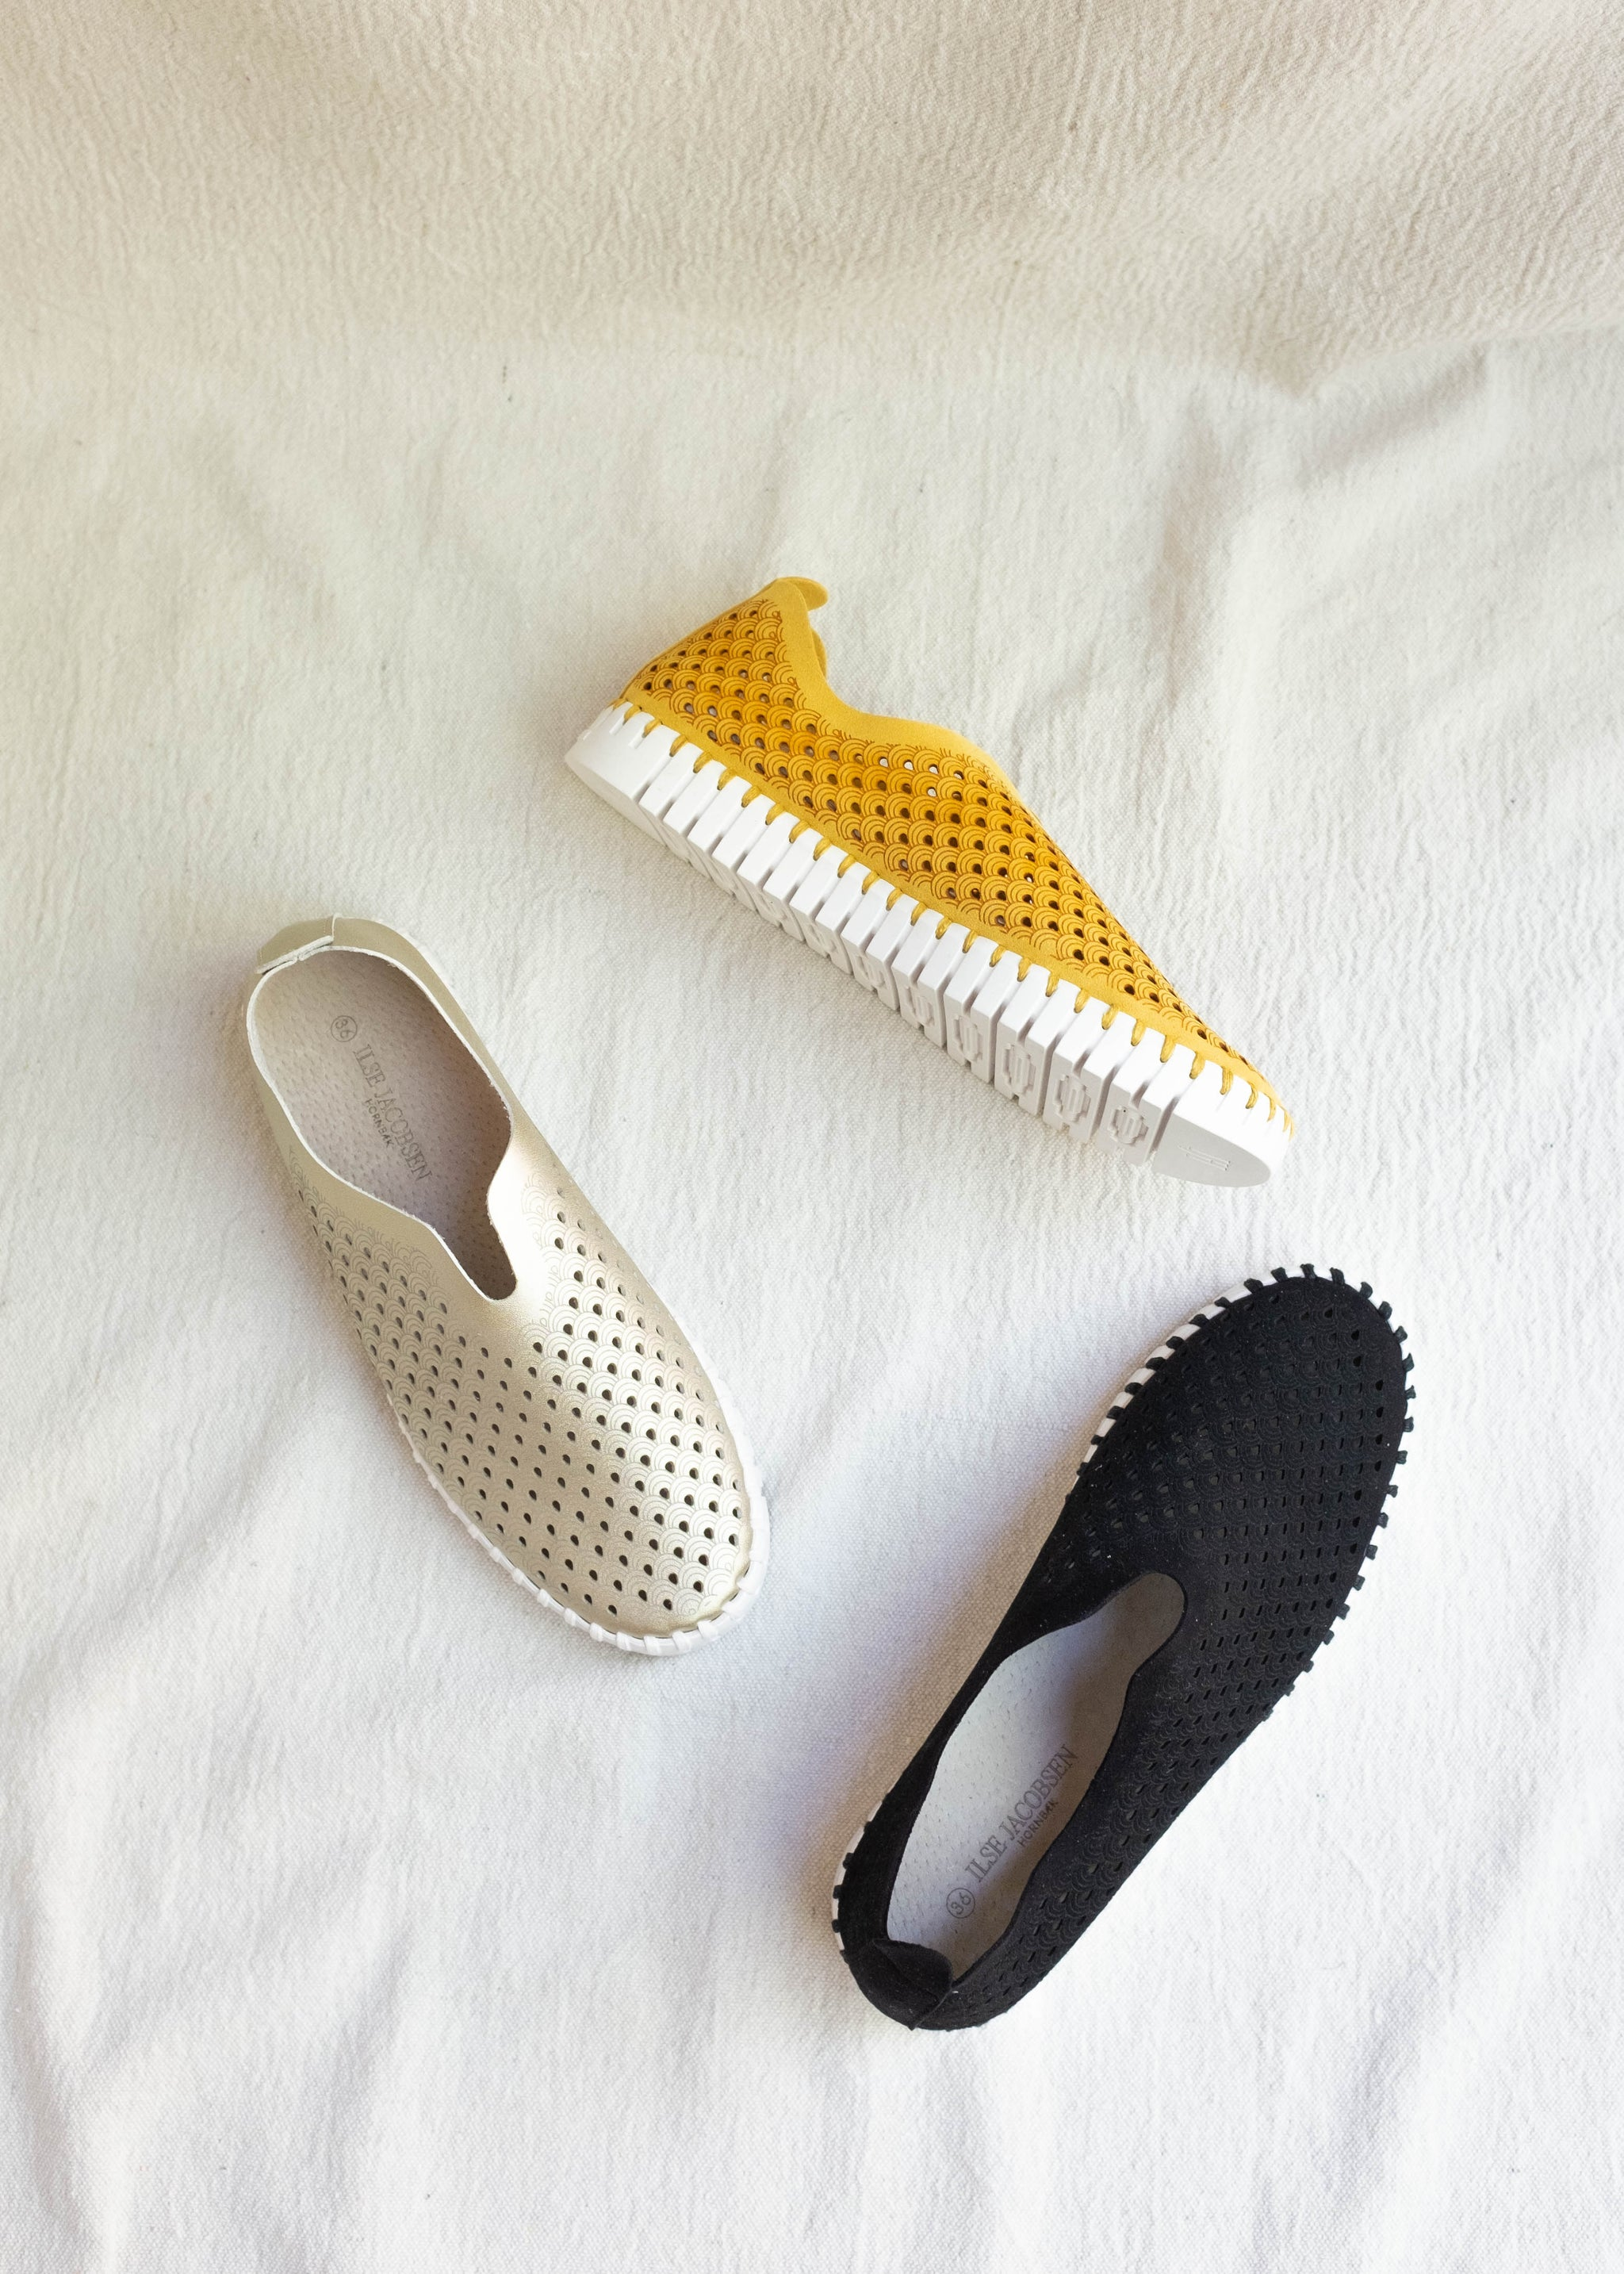 Overhead view of 3 pairs of microfiber sneakers